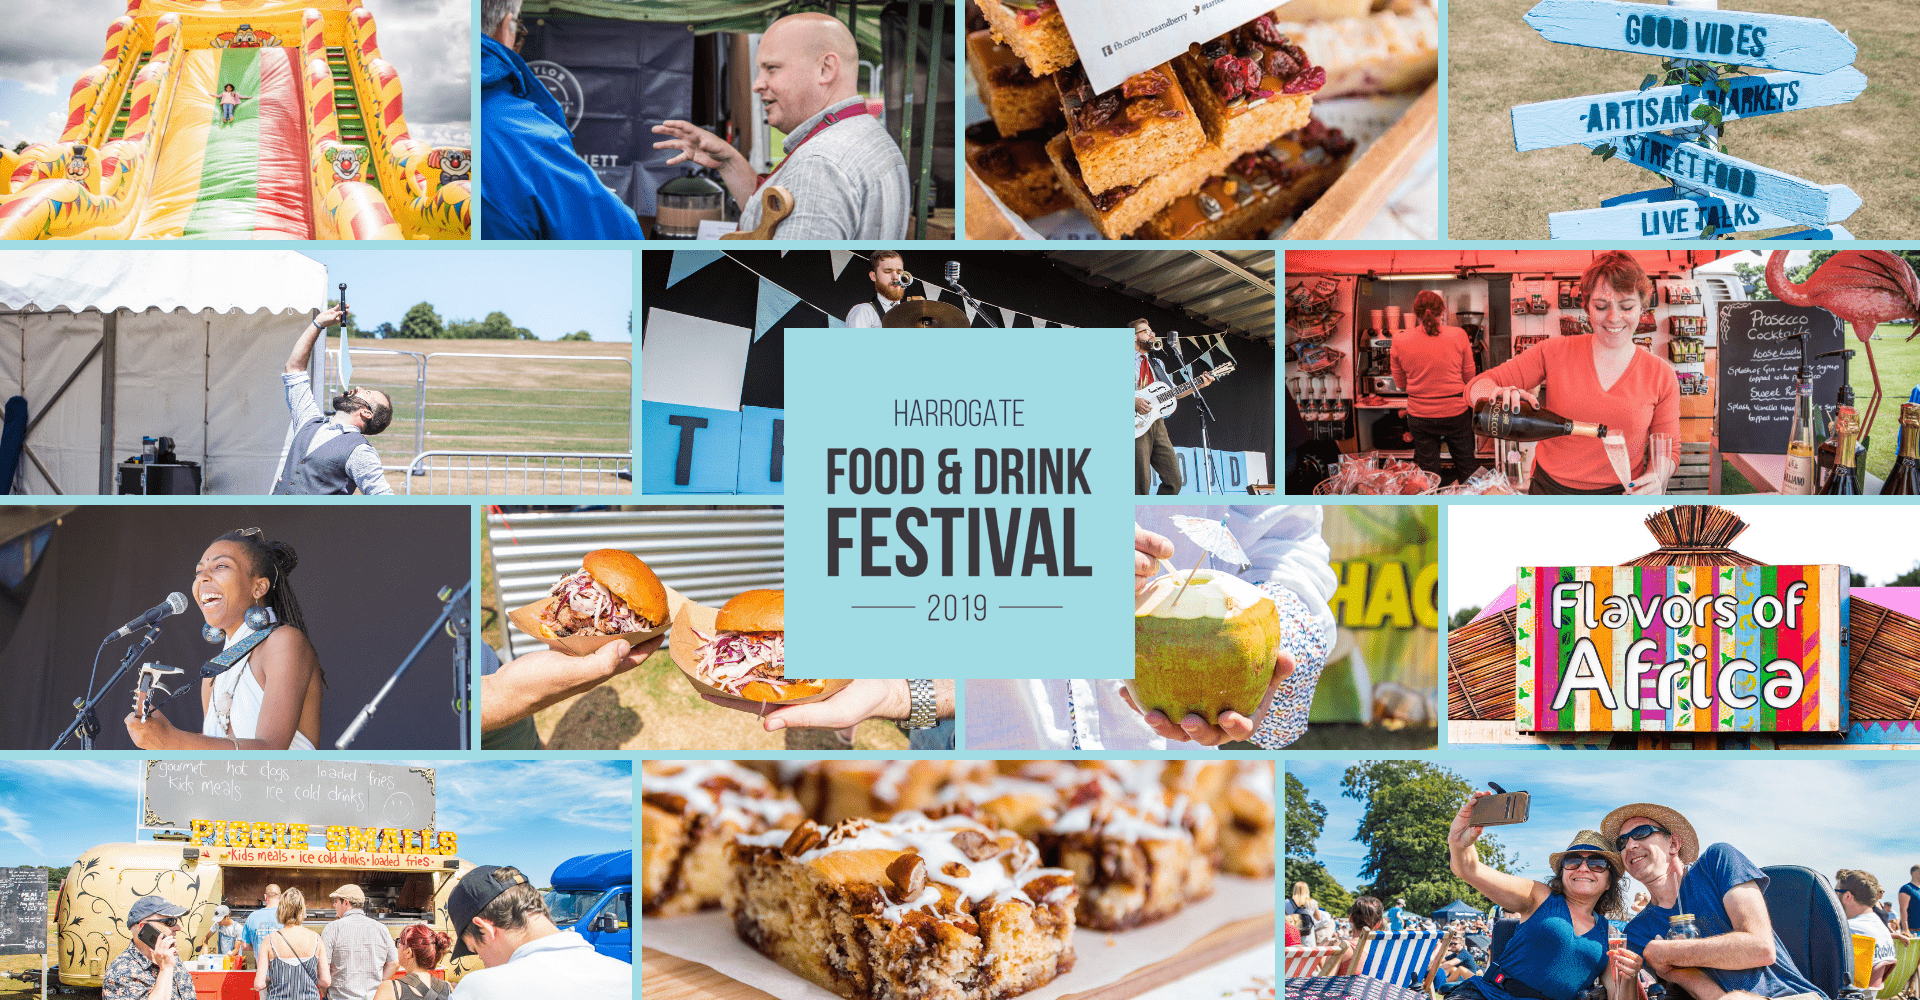 Harrogate Food & Drink Festival